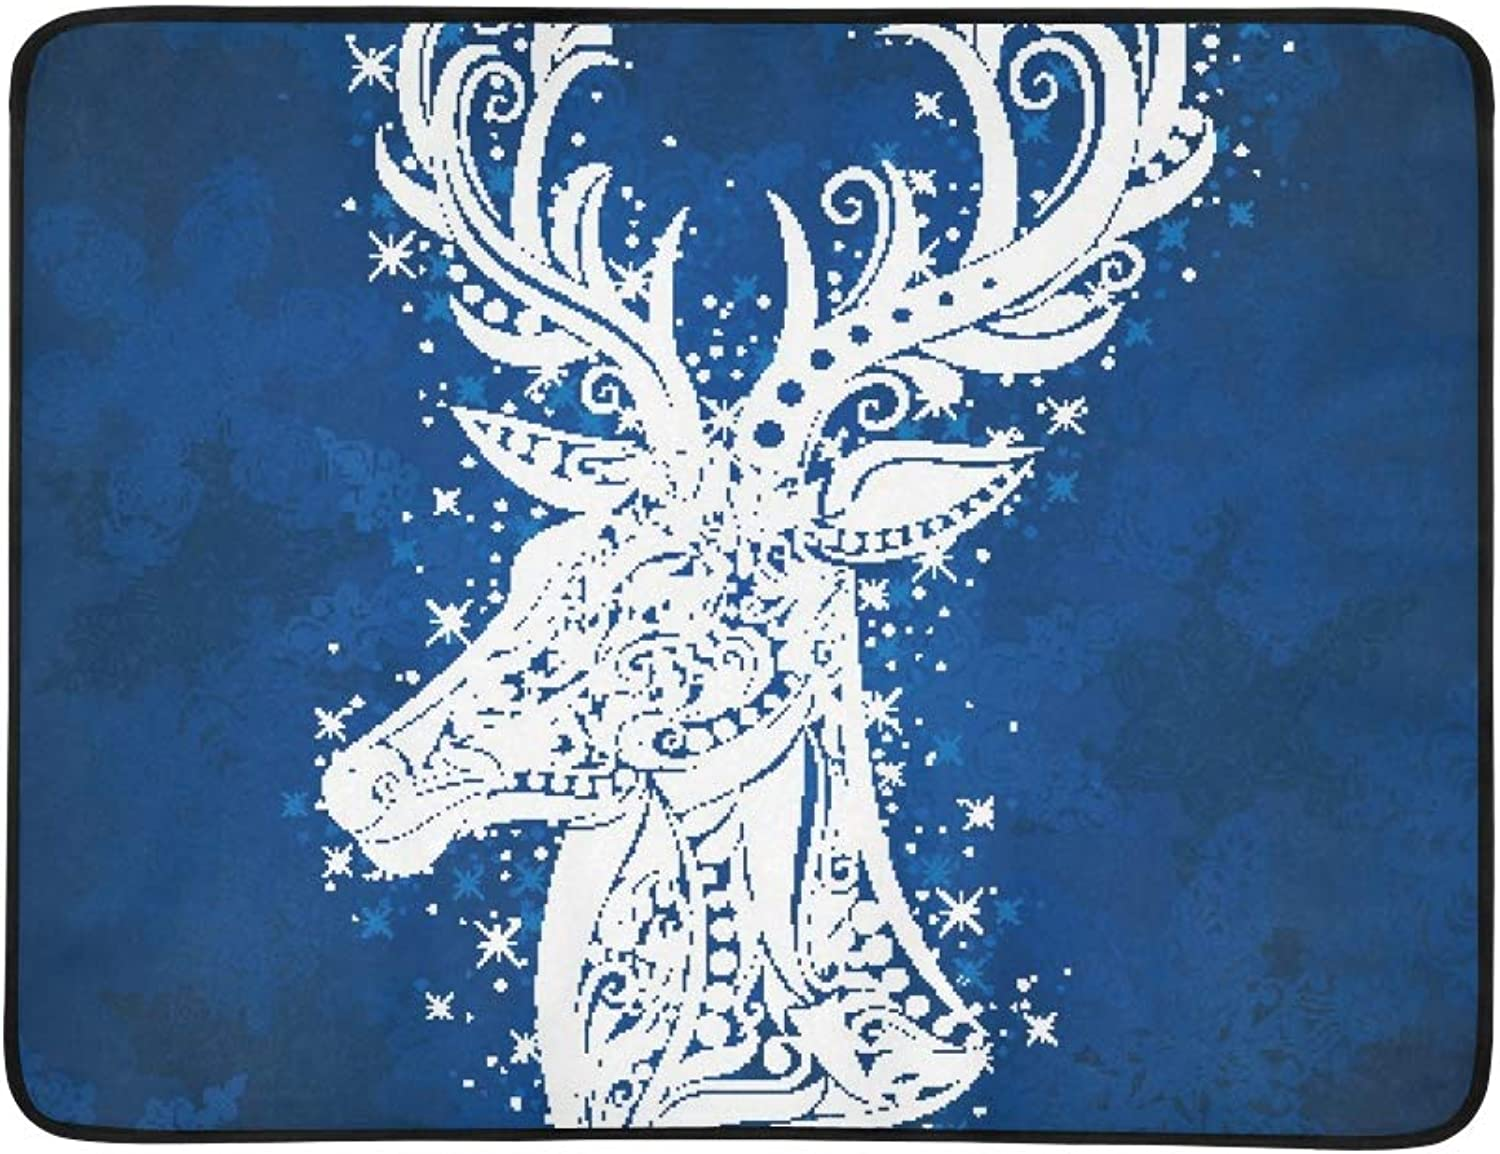 Shape Deer On blueee Portable and Foldable Blanket Mat 60x78 Inch Handy Mat for Camping Picnic Beach Indoor Outdoor Travel